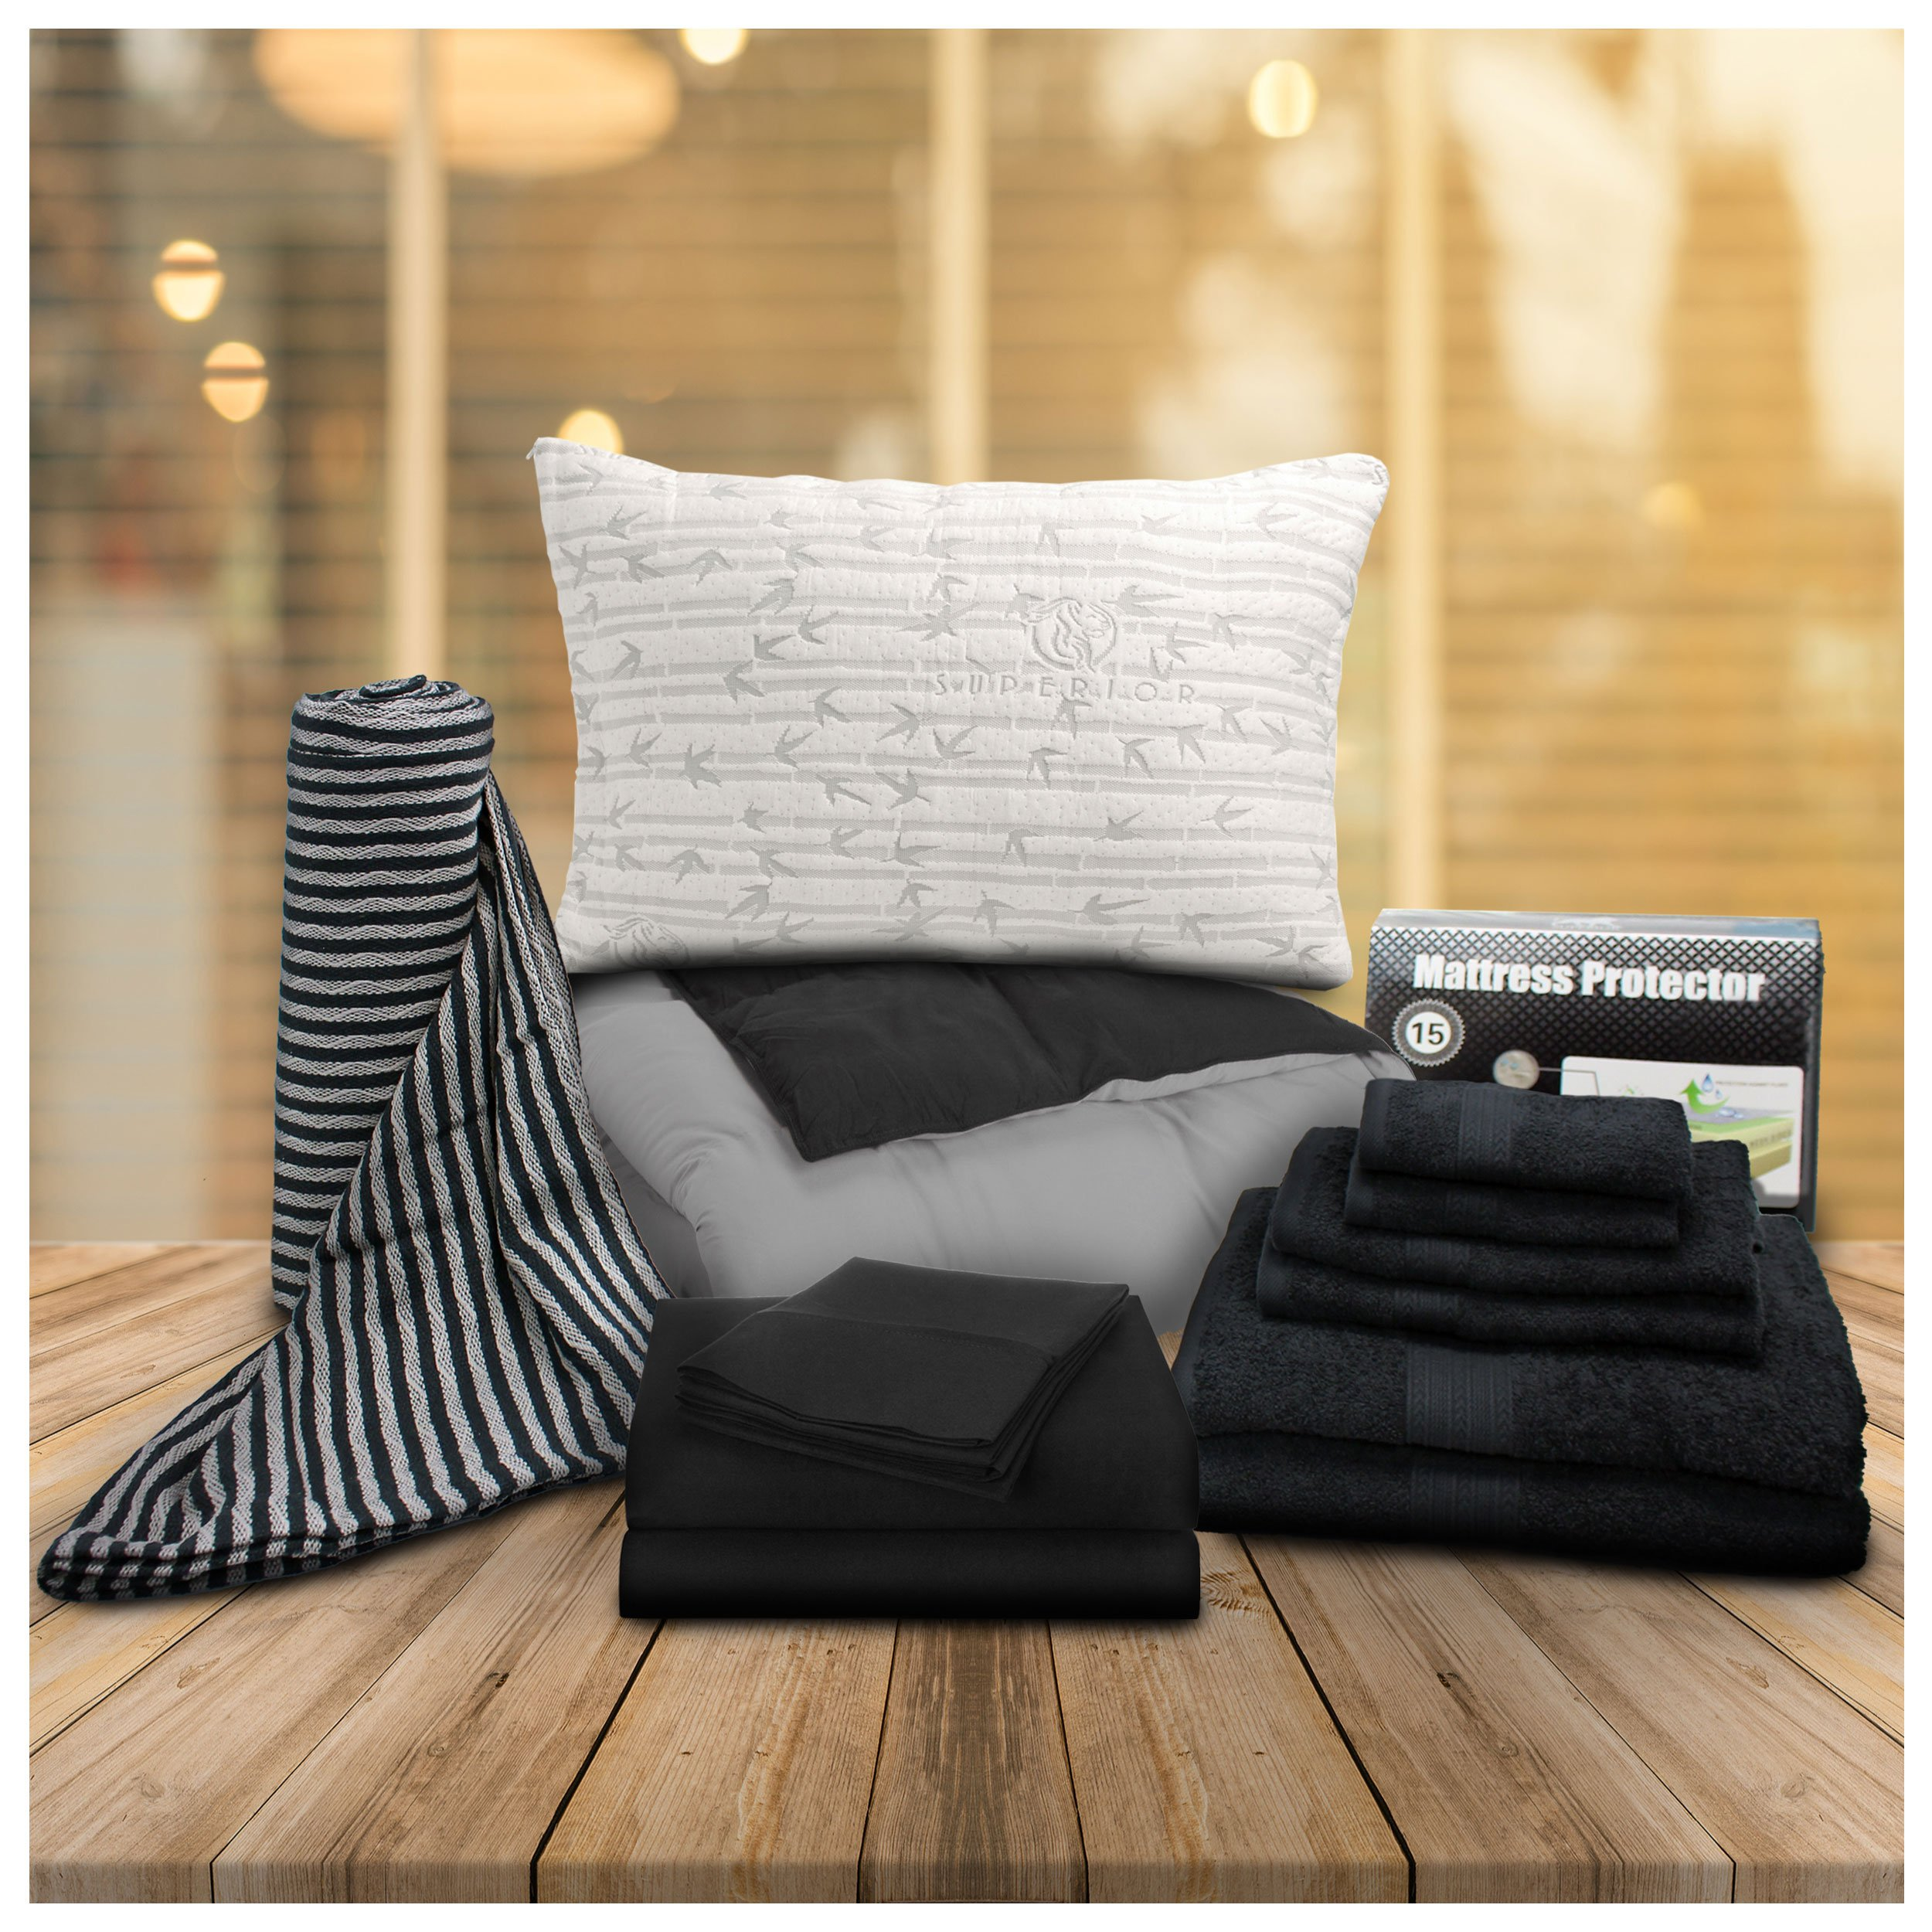 Superior 13-Piece Back to School Bedding and Bath Set, Essential College Bedding Sets for Dorm Rooms, Unisex, Twin XL, Black & White